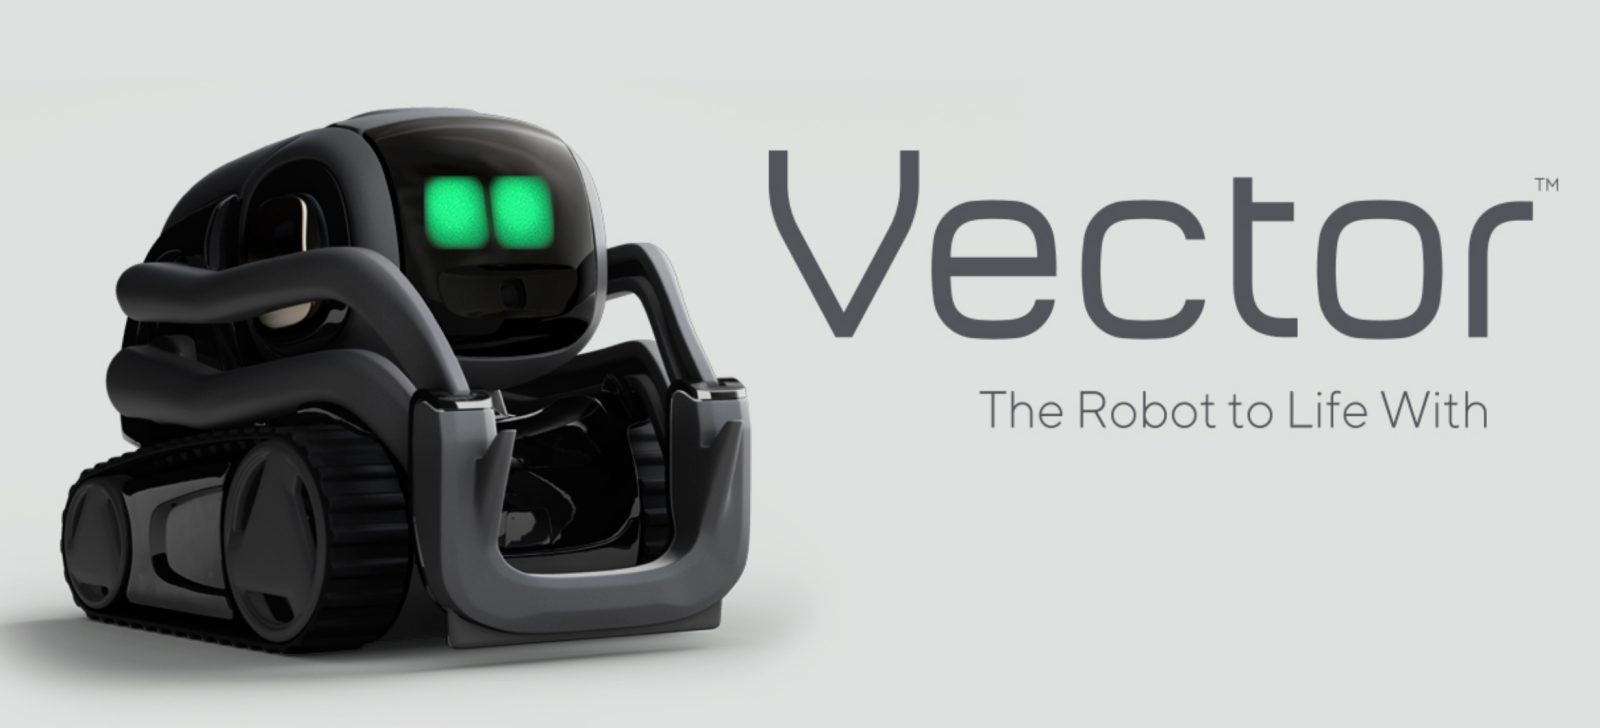 Anki announces Vector, its newest intelligent robot for your